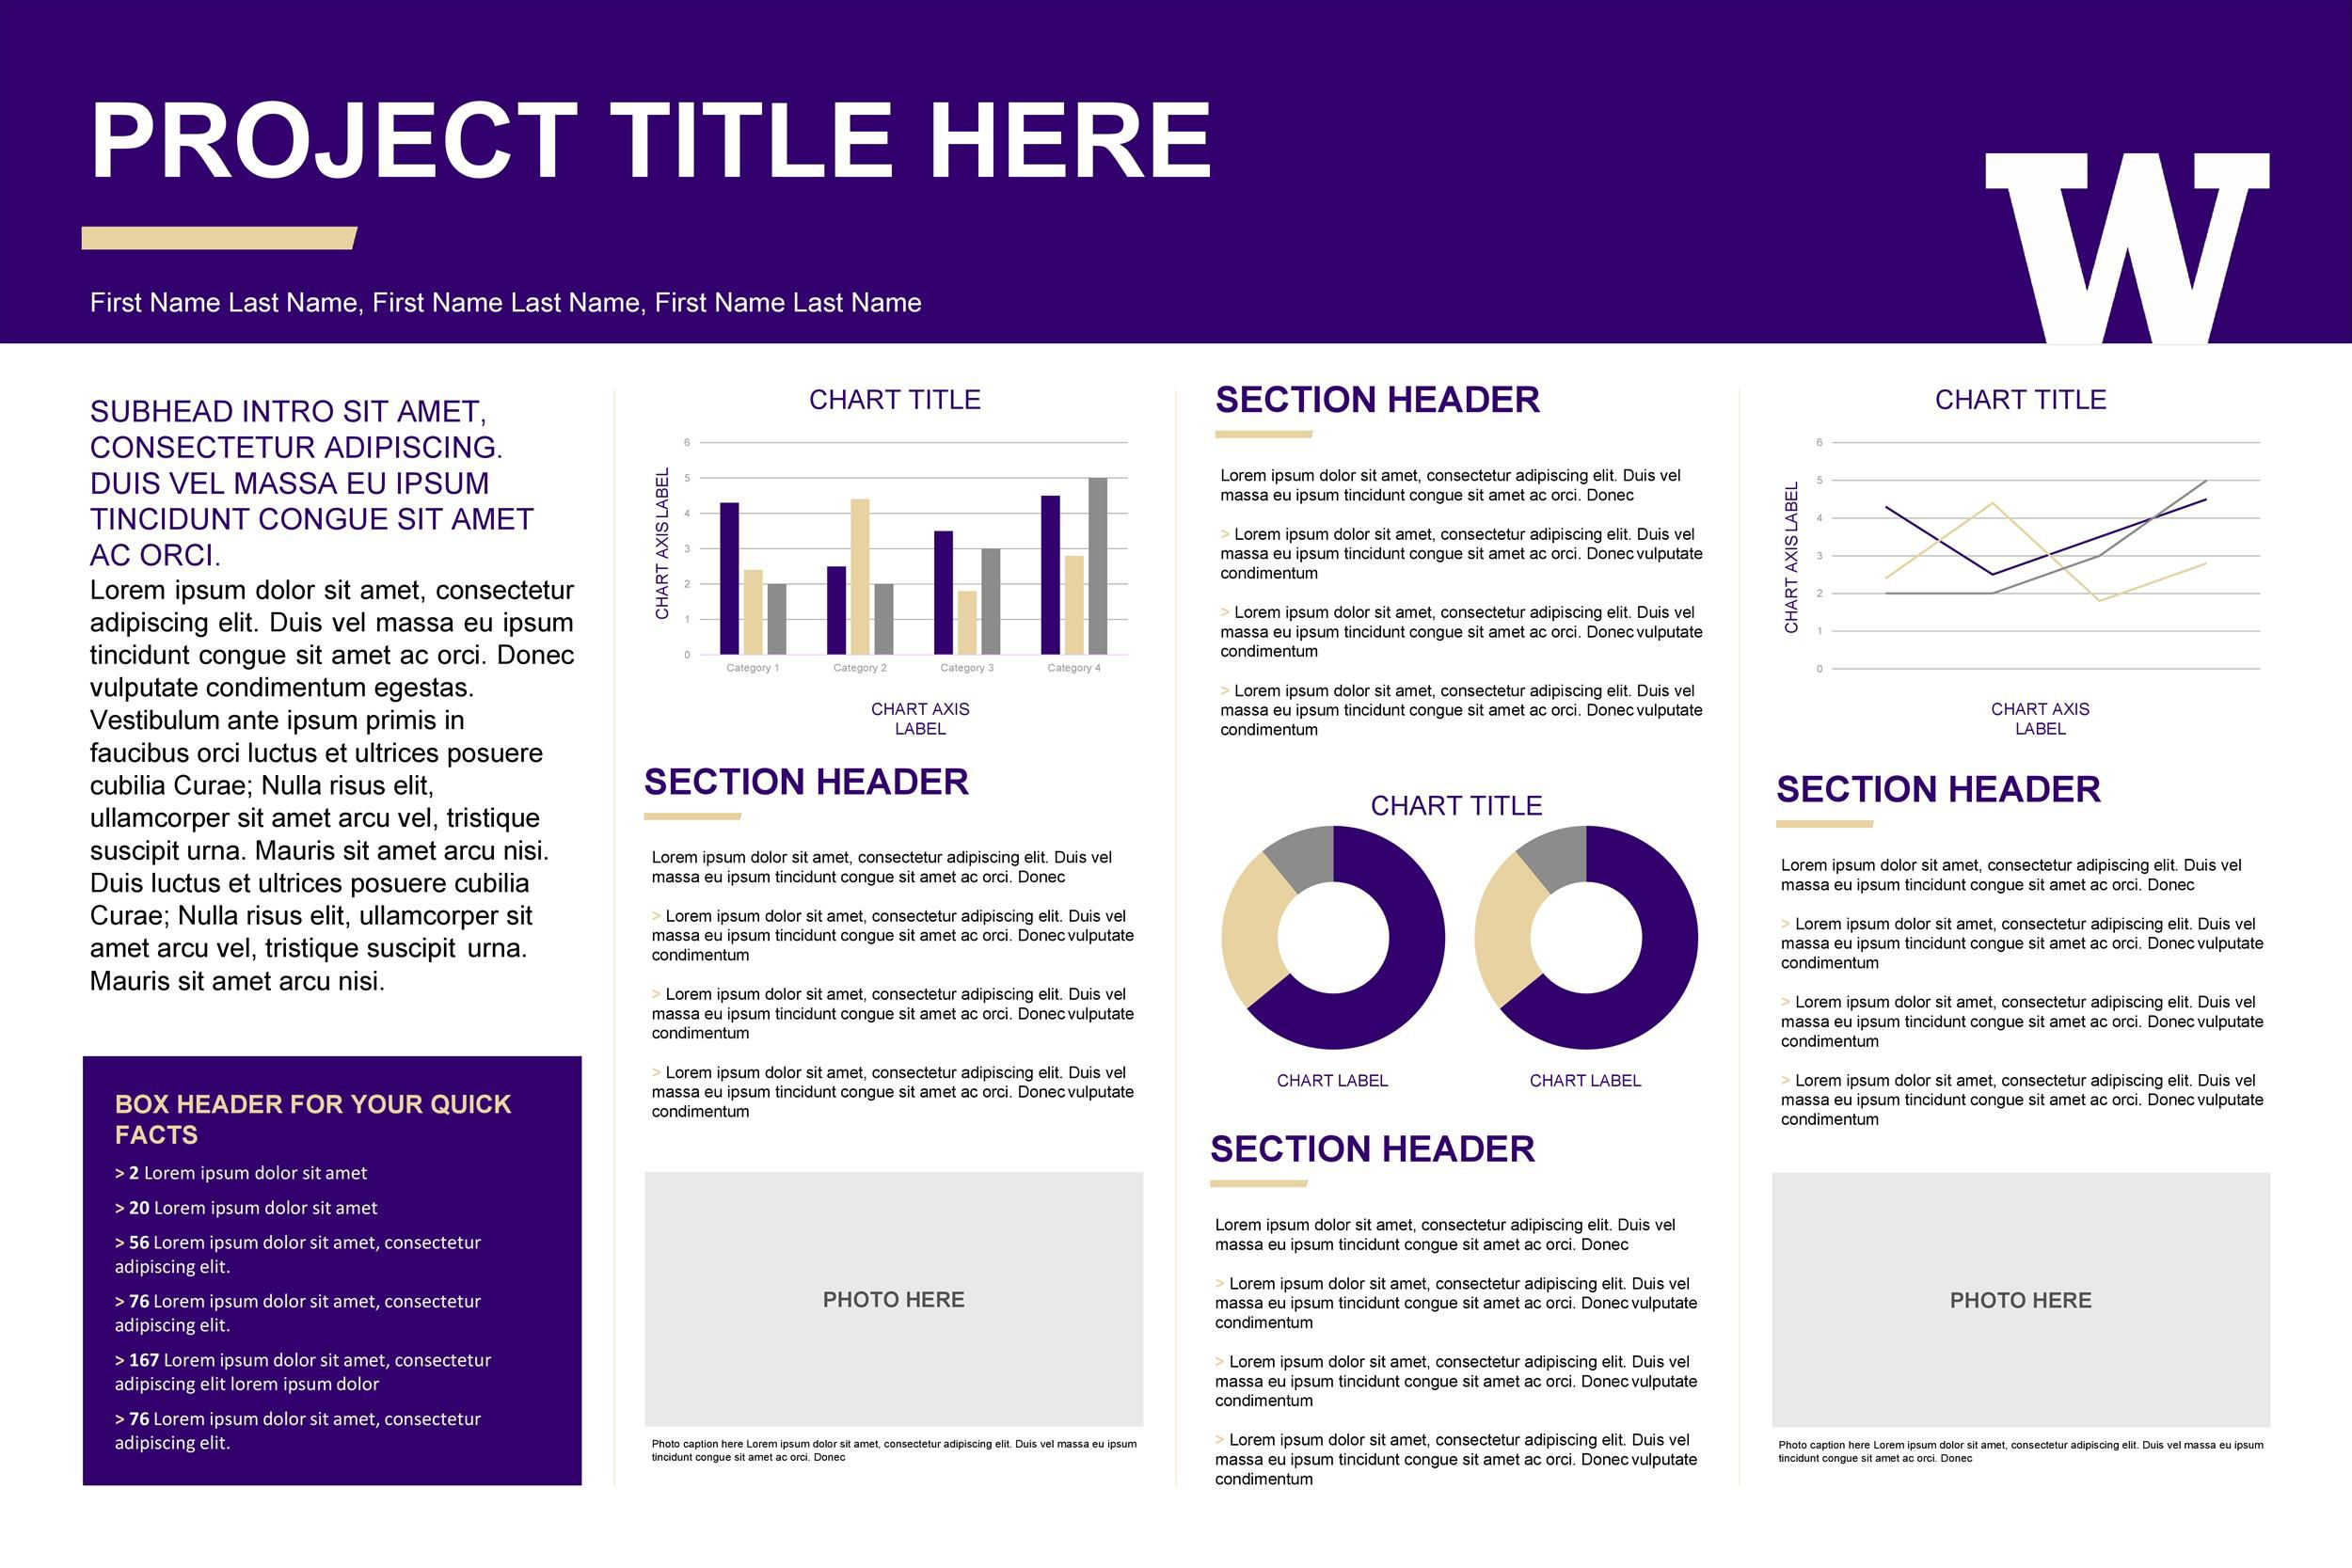 006 Formidable Scientific Poster Design Template Free Download Full